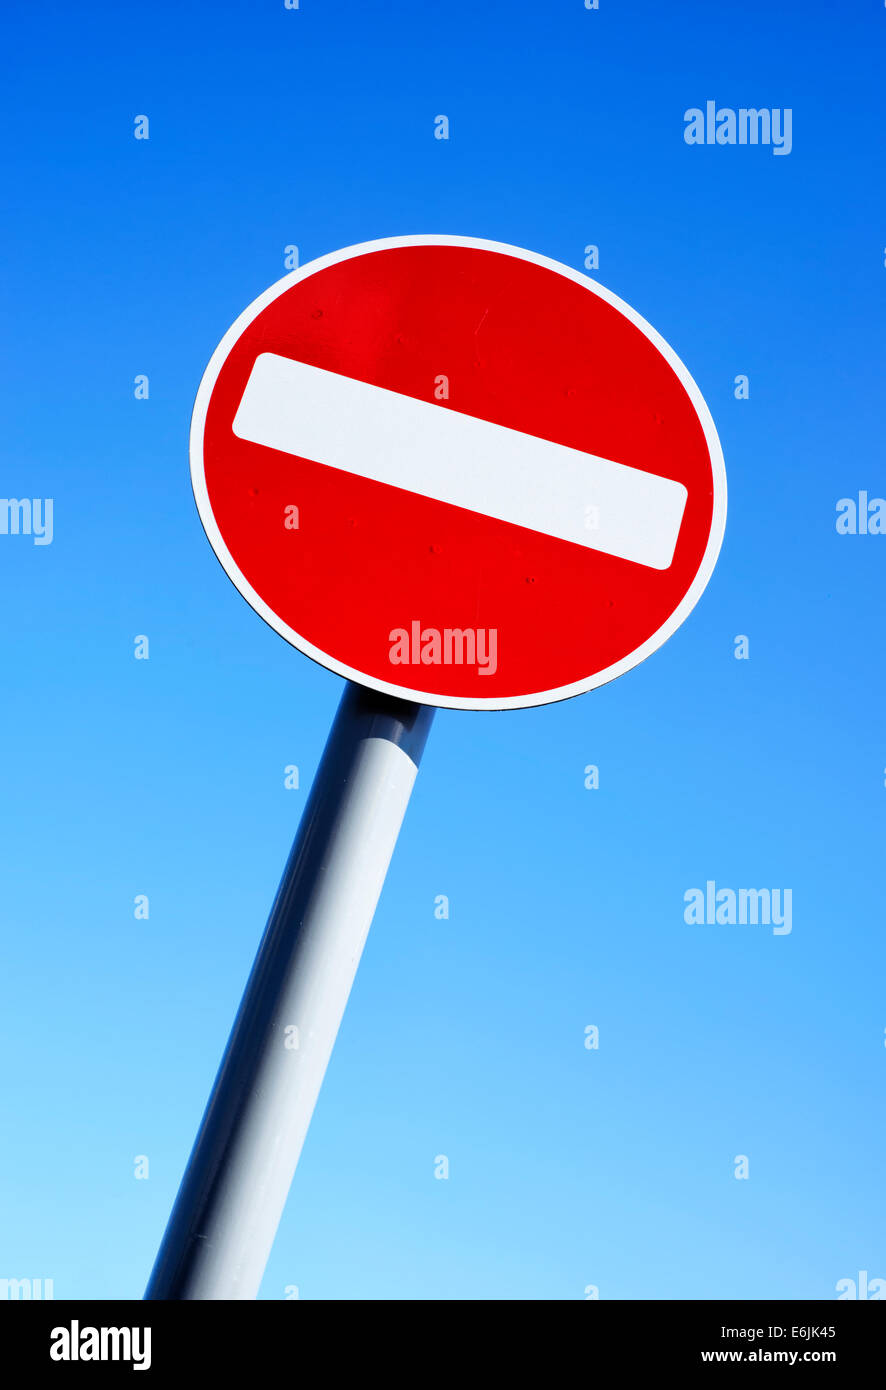 No Entry sign on a pole - Stock Image